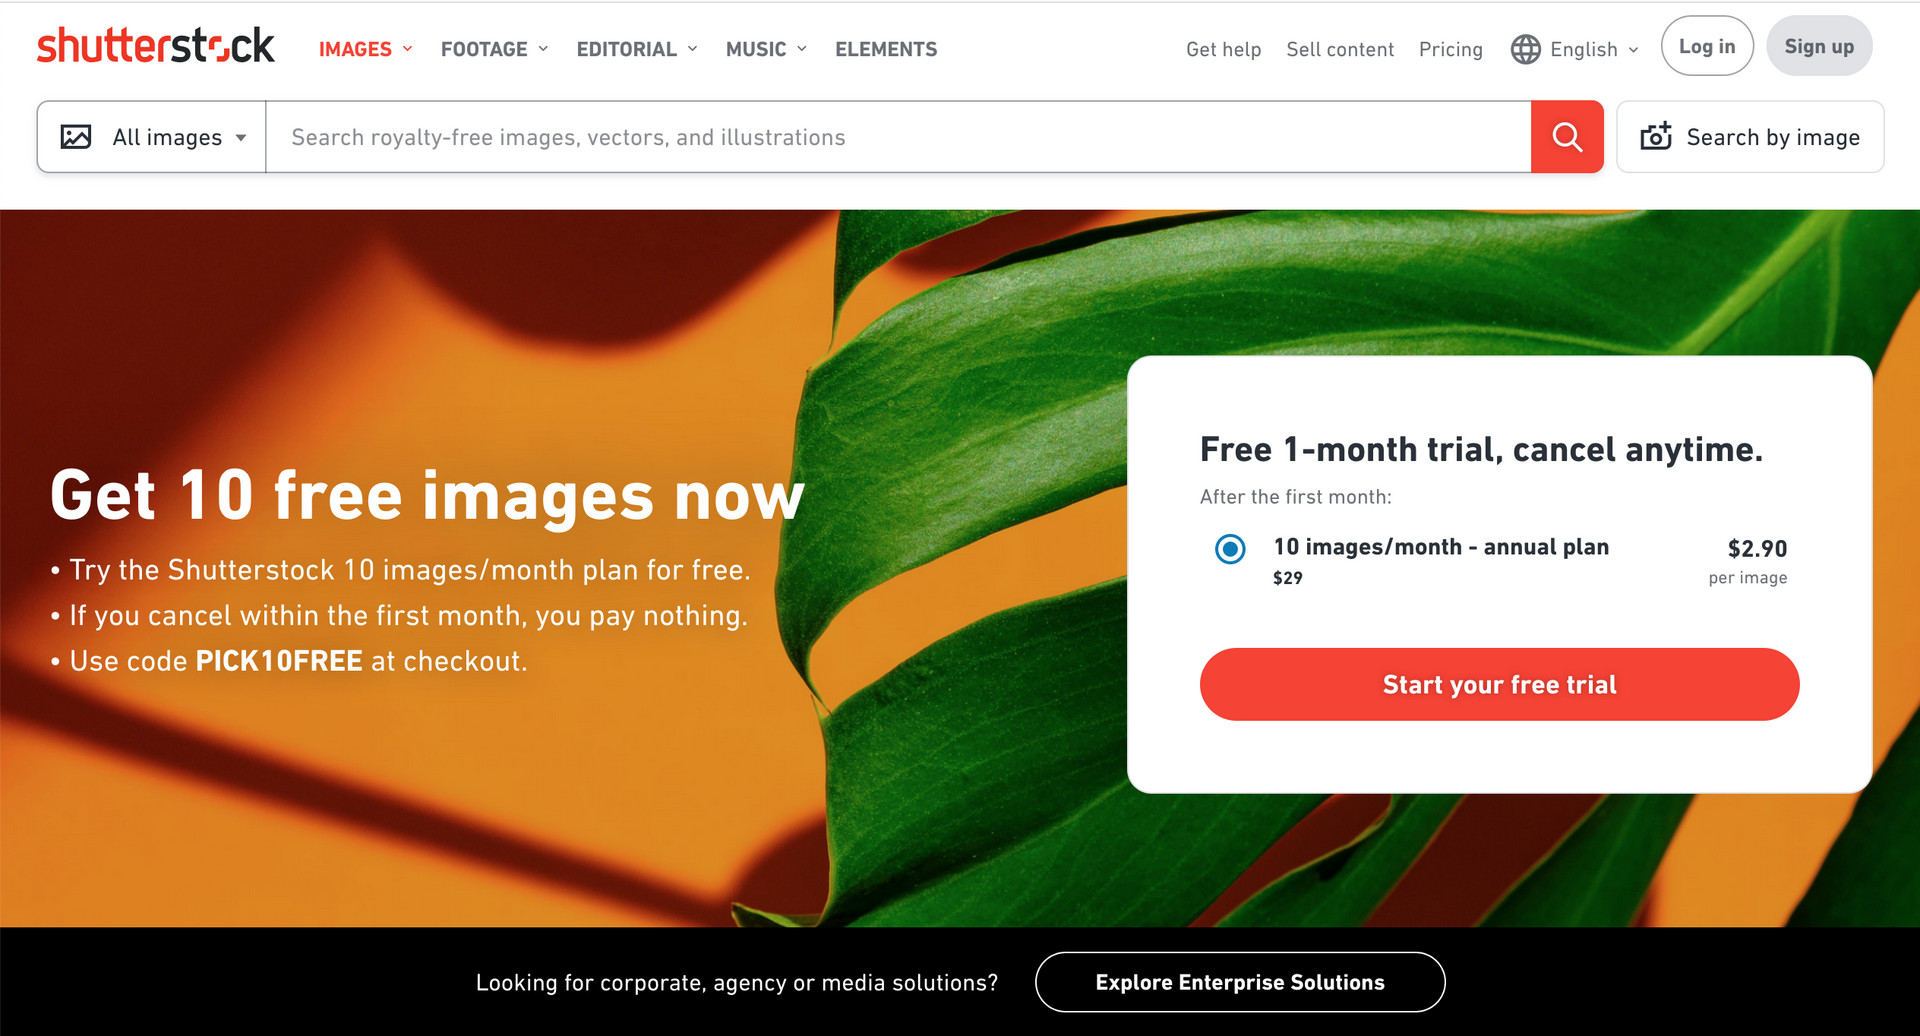 Shutterstock website